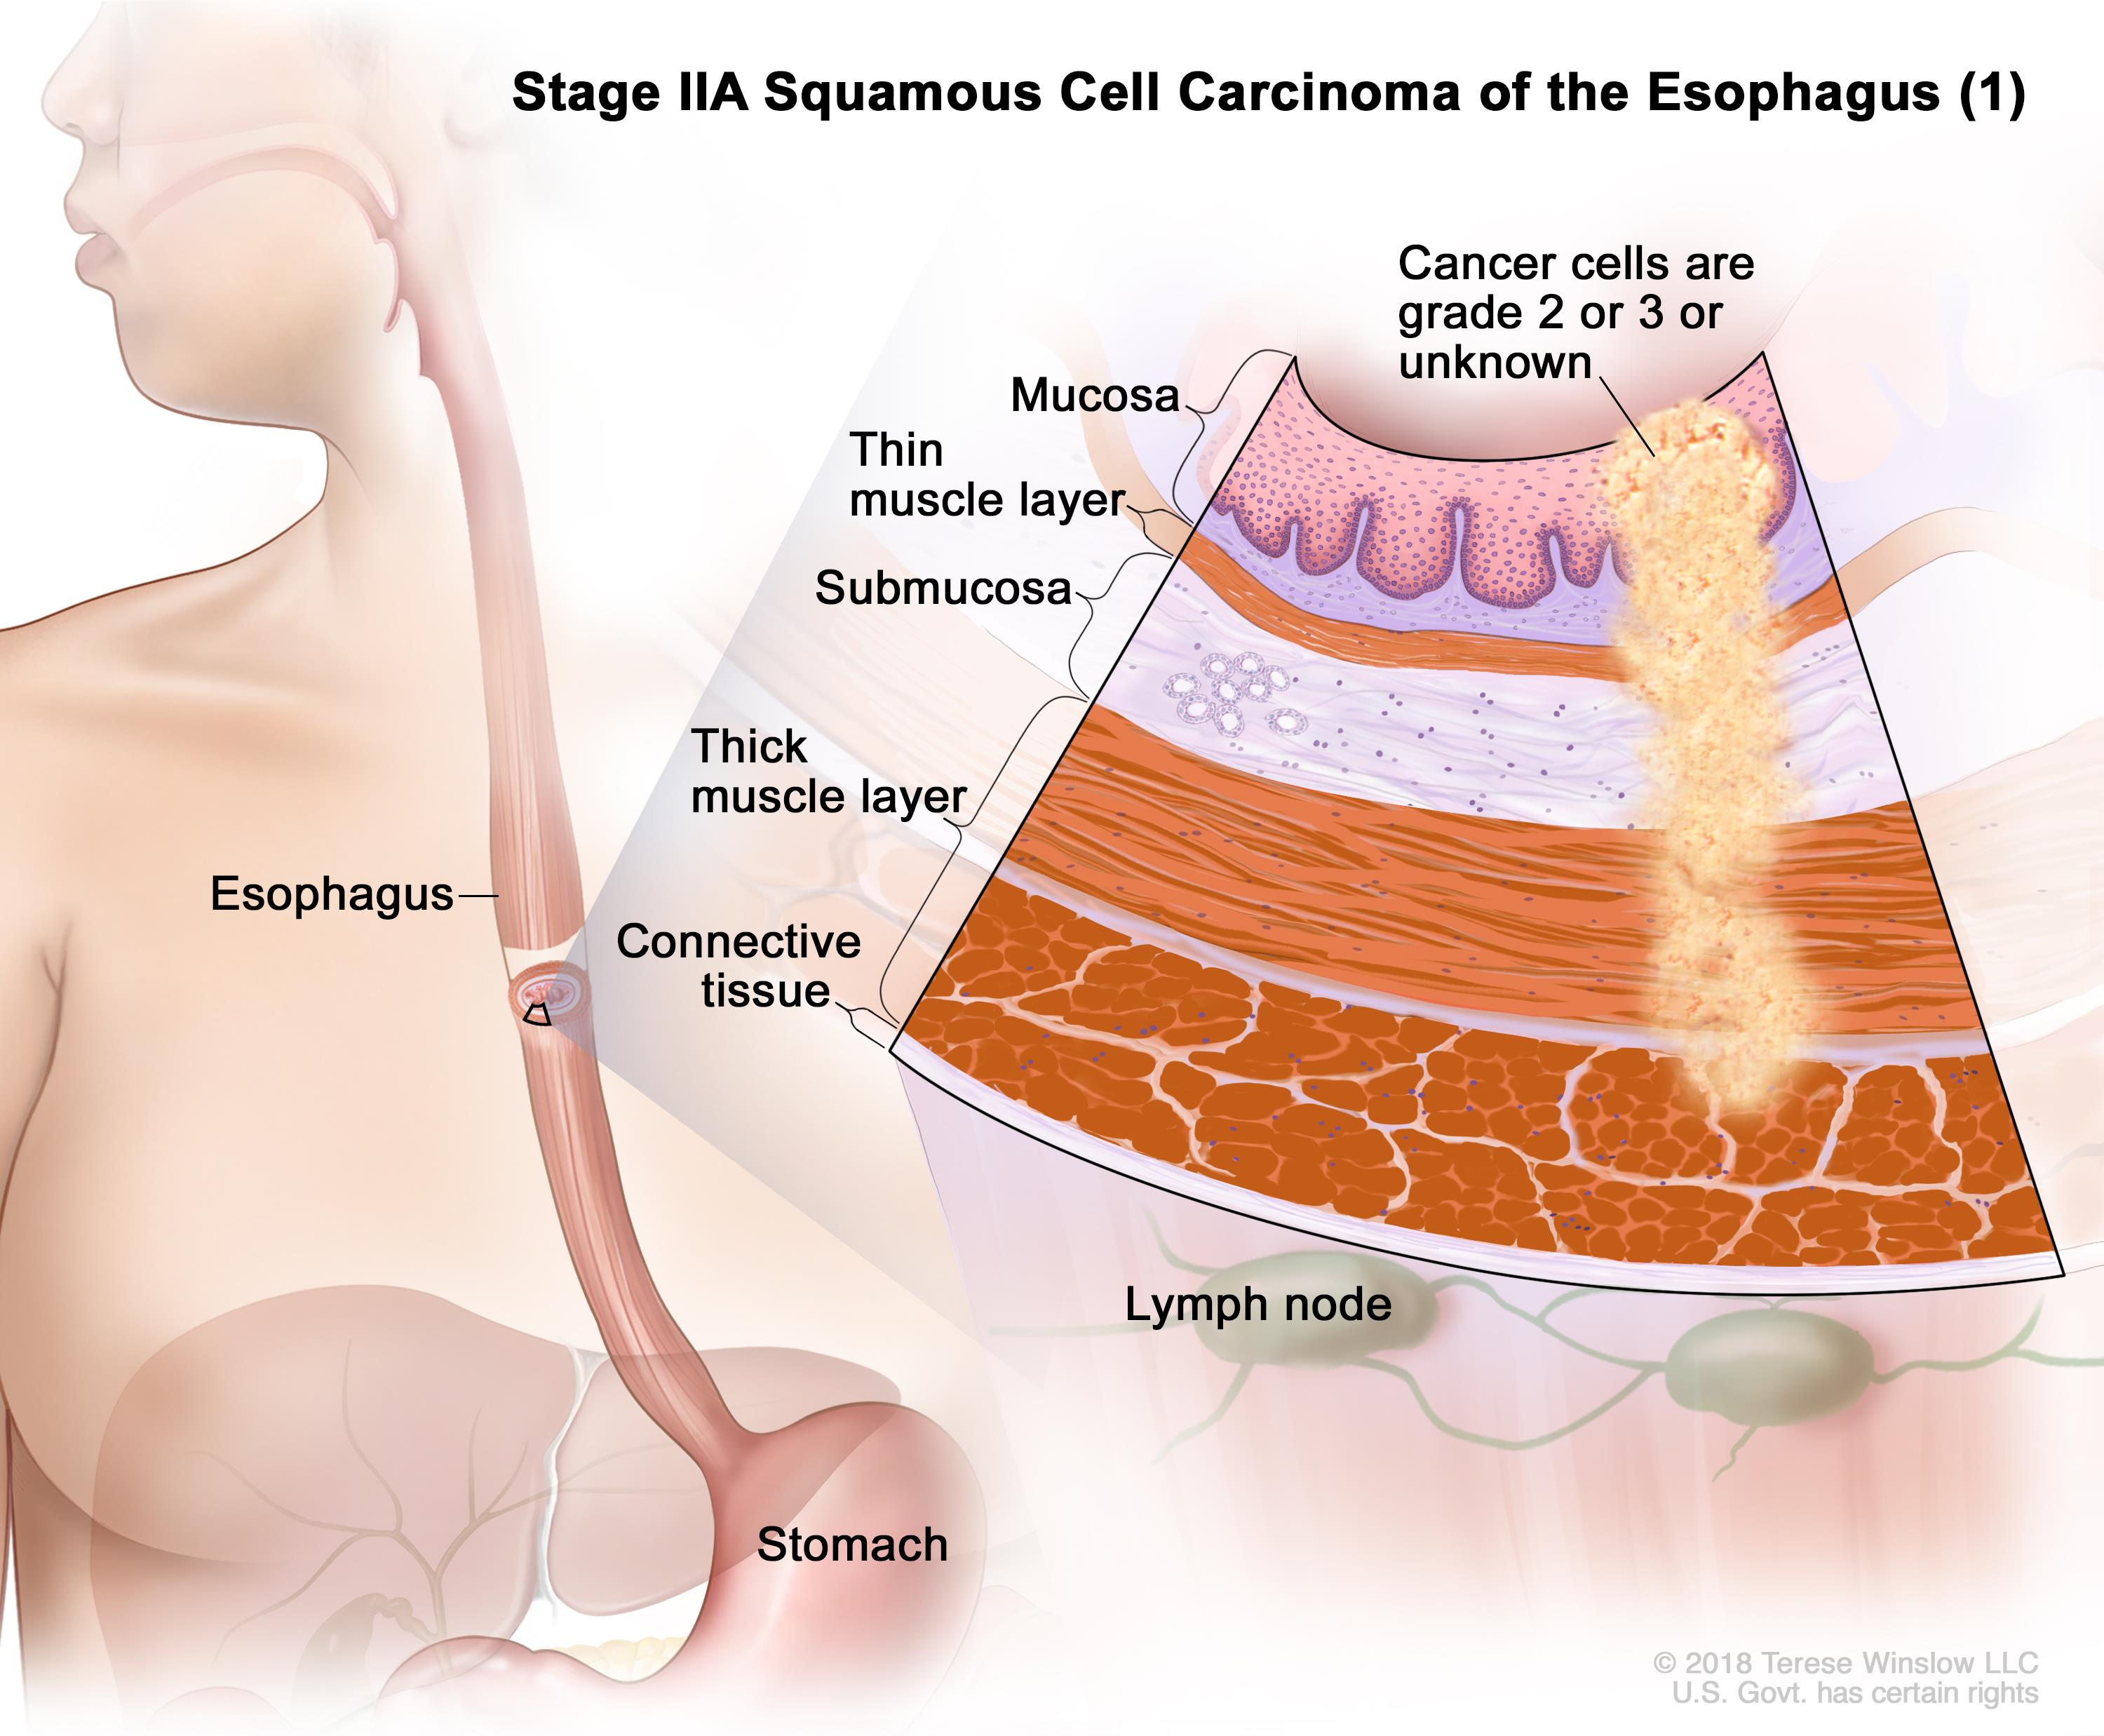 Stage IIA squamous cell cancer of the esophagus (1); drawing shows the esophagus and stomach. An inset shows the layers of the esophagus wall with cancer in the mucosa, submucosa, muscle, and connective tissue layers. Also shown are lymph nodes.